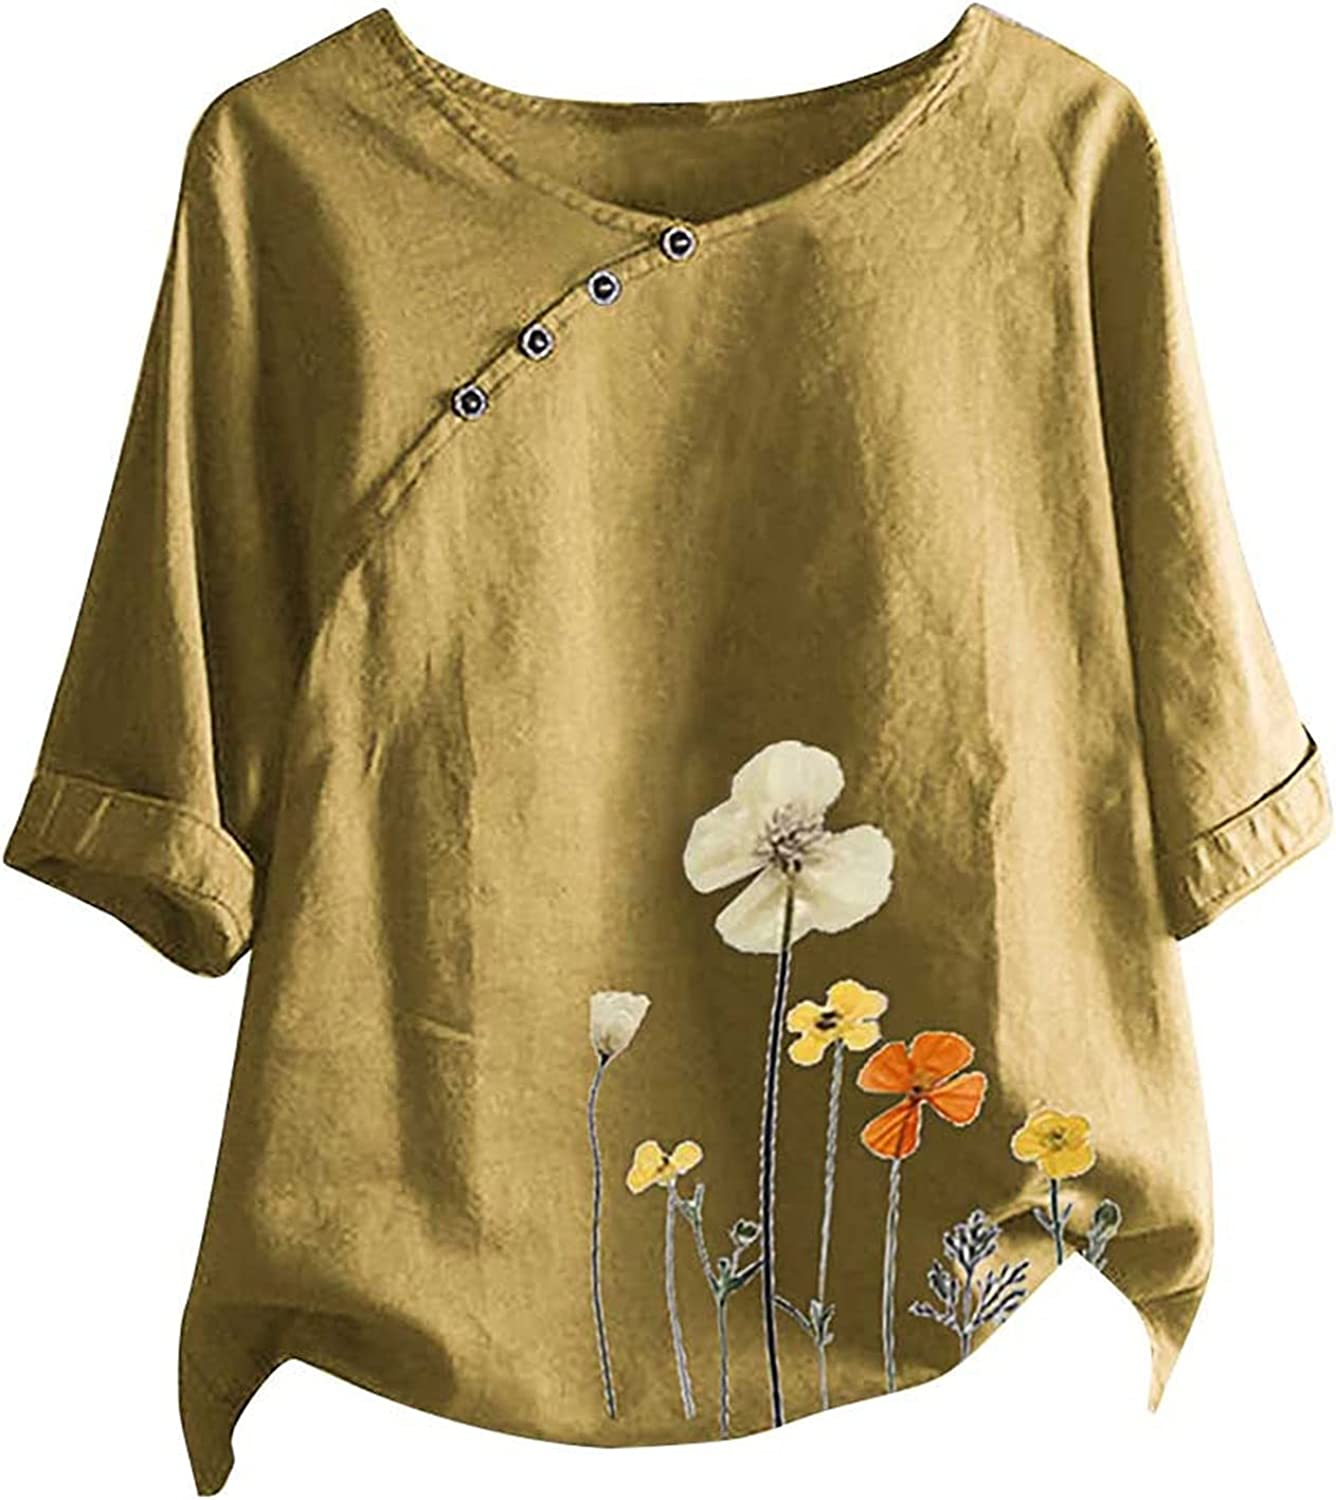 Women Plus Size Tops Floral Print Half Sleeve O Neck Summer Casual T-Shirts Oversized Blouse Loose Fit Blusas